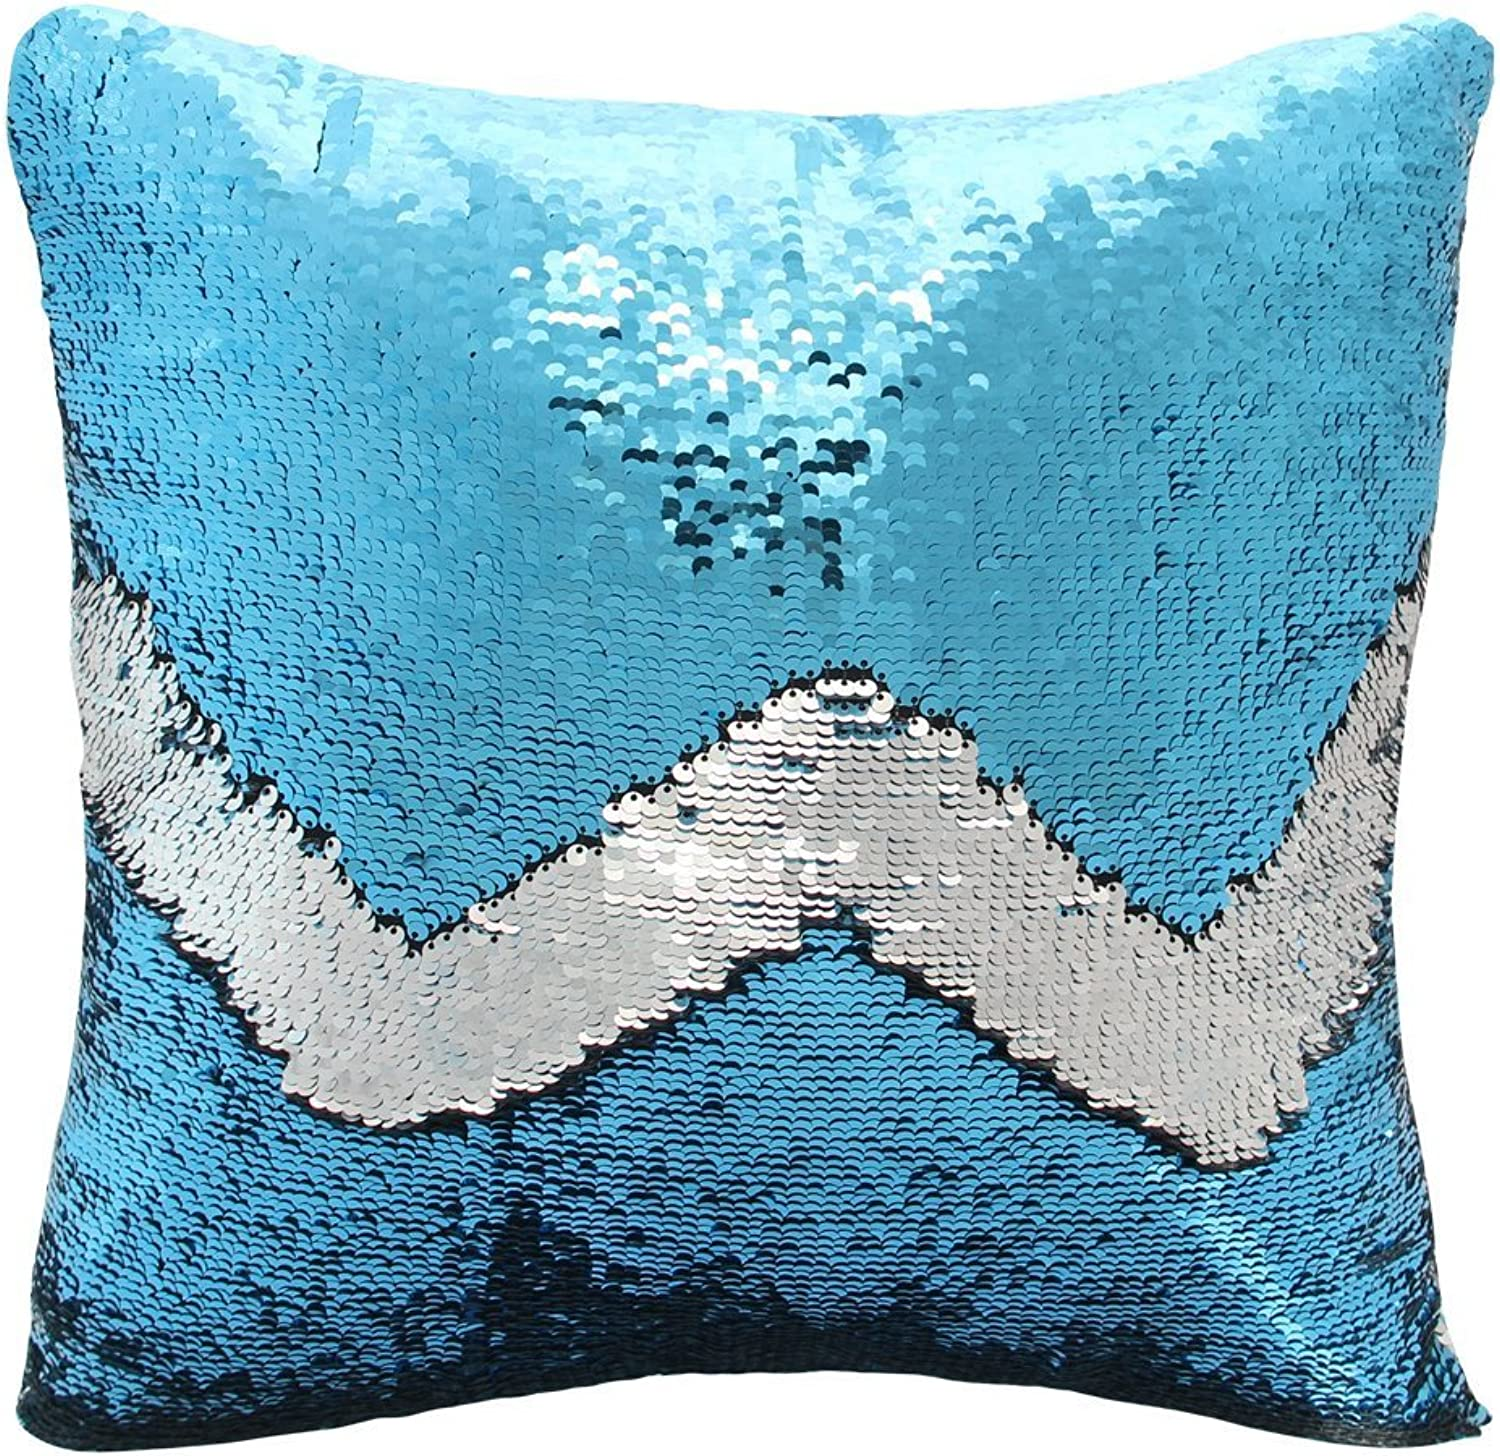 BlingSoul Little Mermaid Pillow Cover - Reversible Flip Magic Sequin Pillow Case Sparkling Shiny Changing color Throw Party Decoration for Kids Girls Room Decor 16 x16  (bluee Silver)